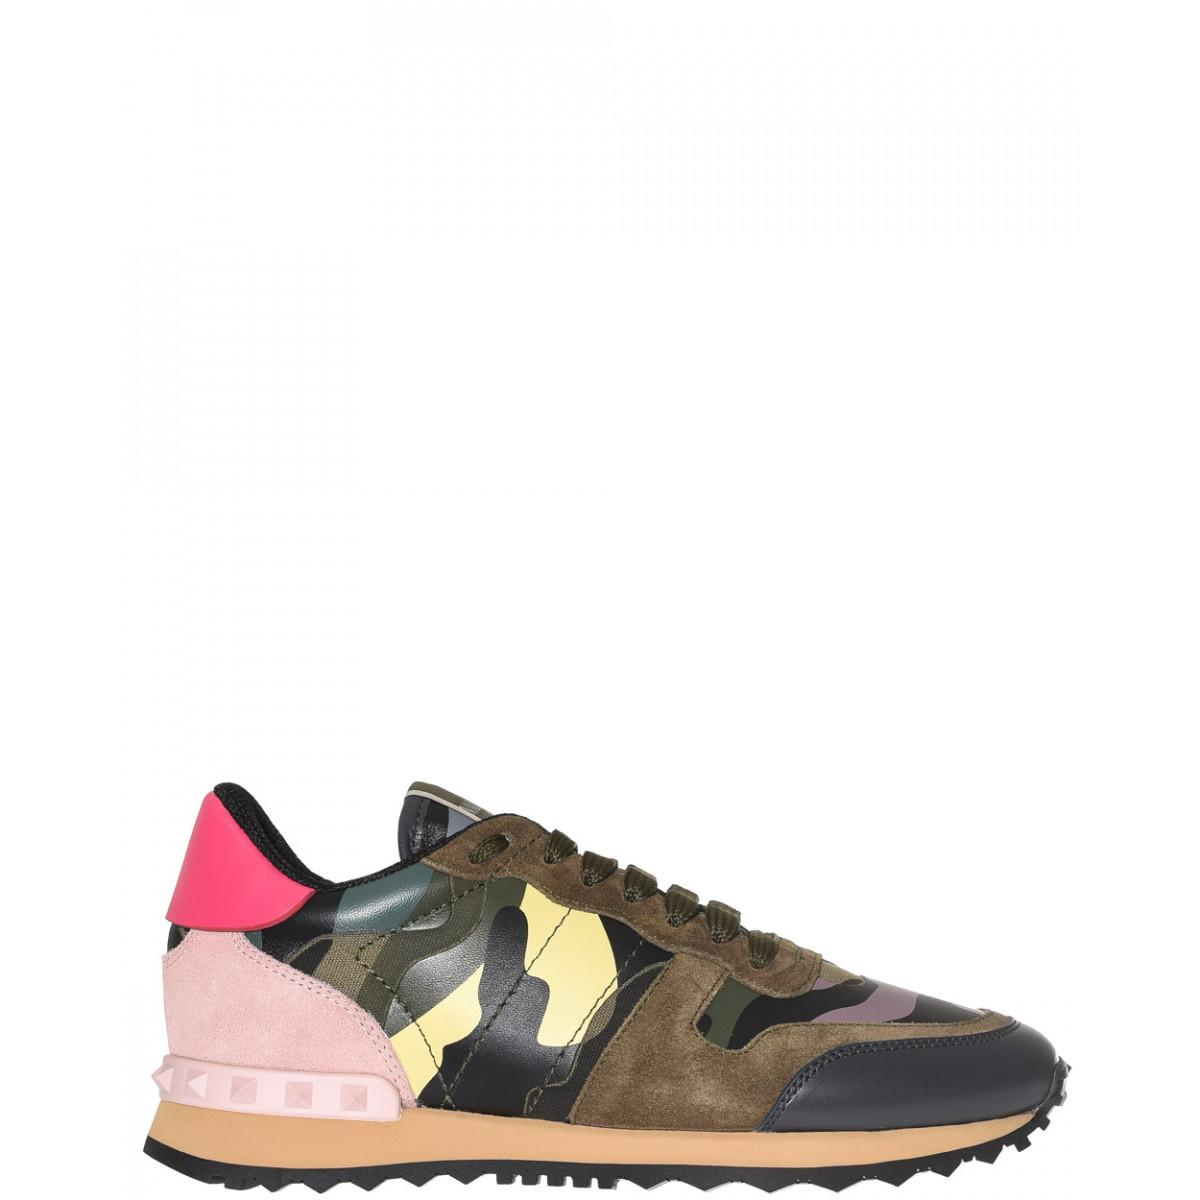 valentino camouflage rockrunner sneakers in brown lyst. Black Bedroom Furniture Sets. Home Design Ideas